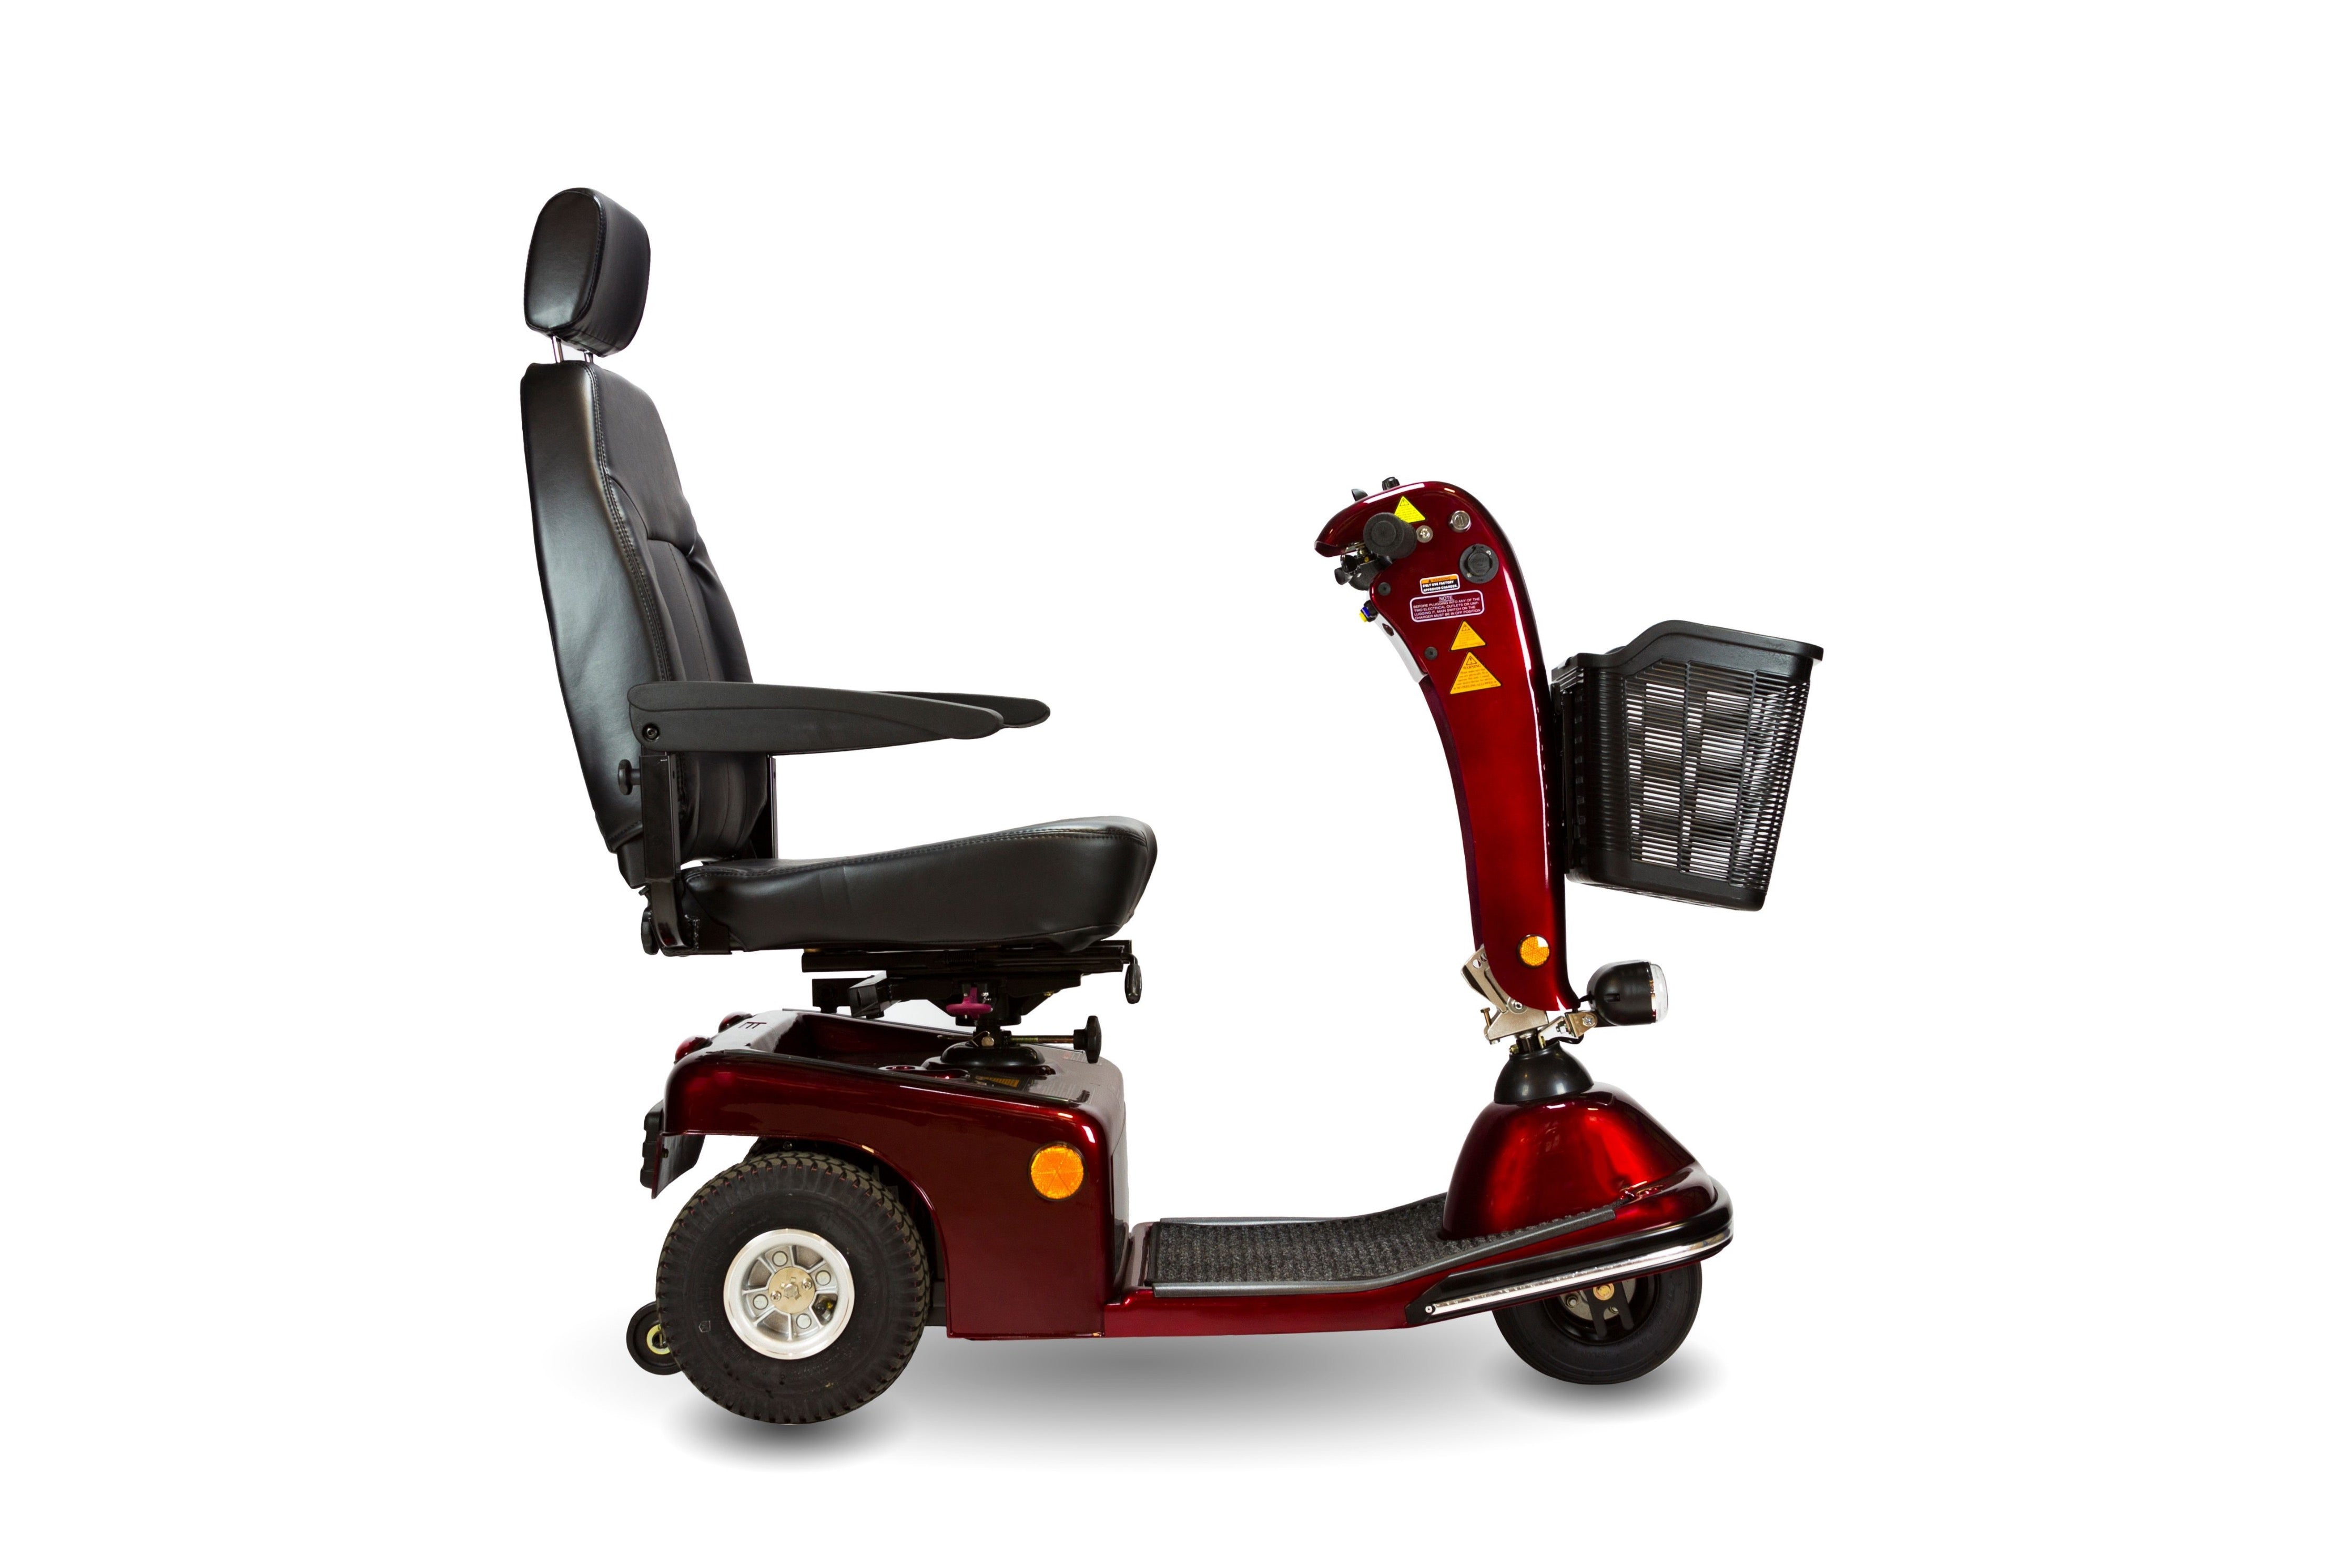 Sunrunner 3 Scooter by ShopRider - 3 Wheels - Mobility Scooter Burgundy Ridetique.com